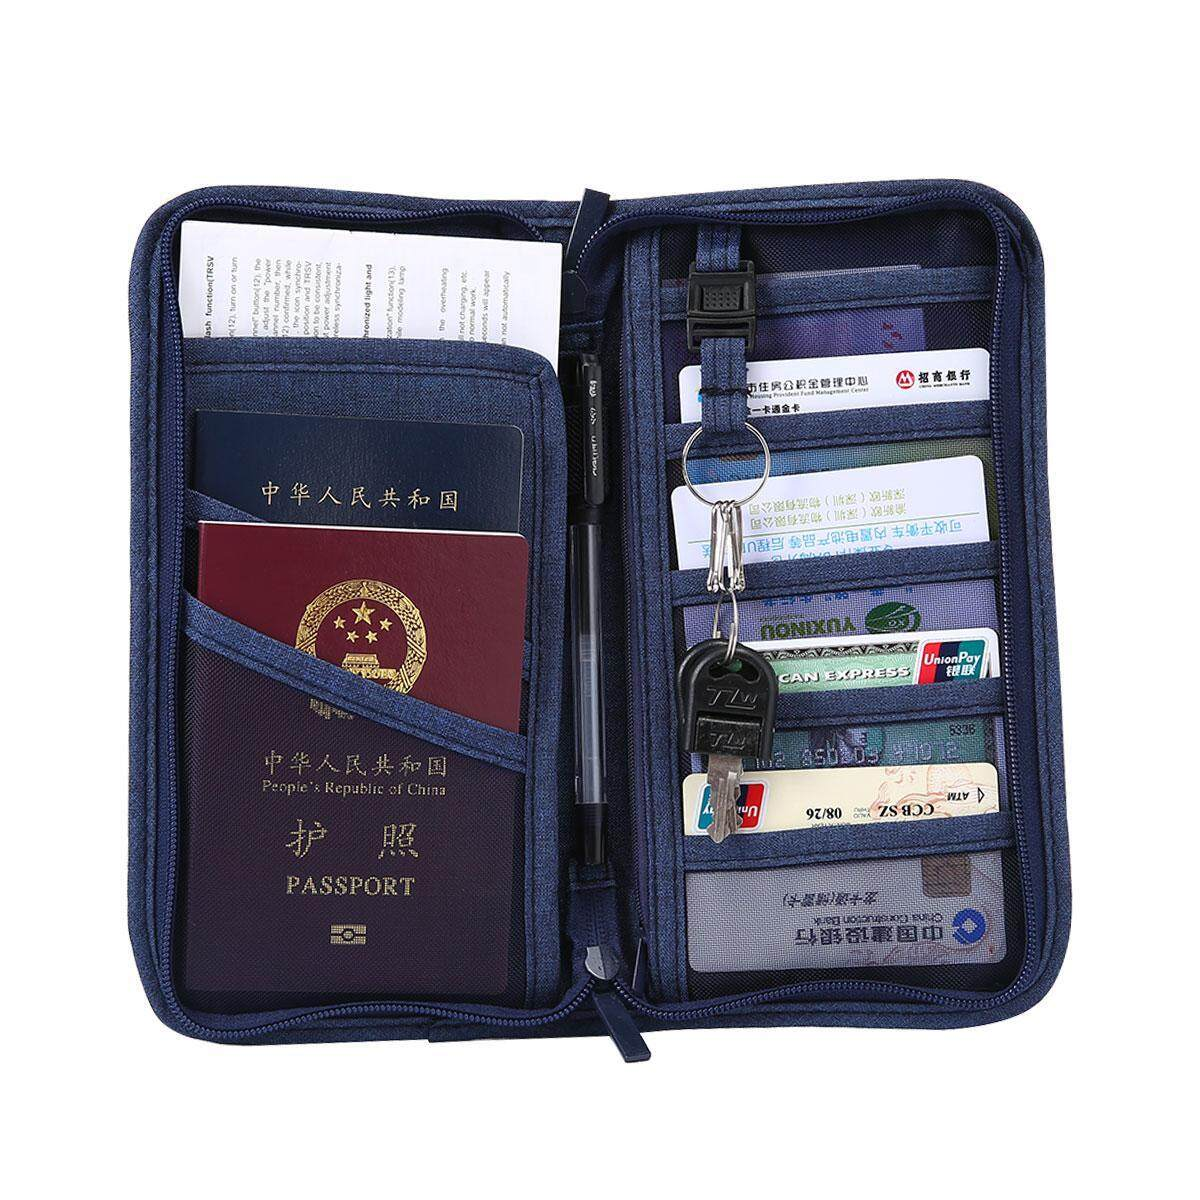 9f069884abbd GoodGreat Travel Wallet Multi-functional Passport Holder Travel Card  Organiser Pouch Storage Bag For Smart Phone, Key,Pens,Ticket,Cash,Passport